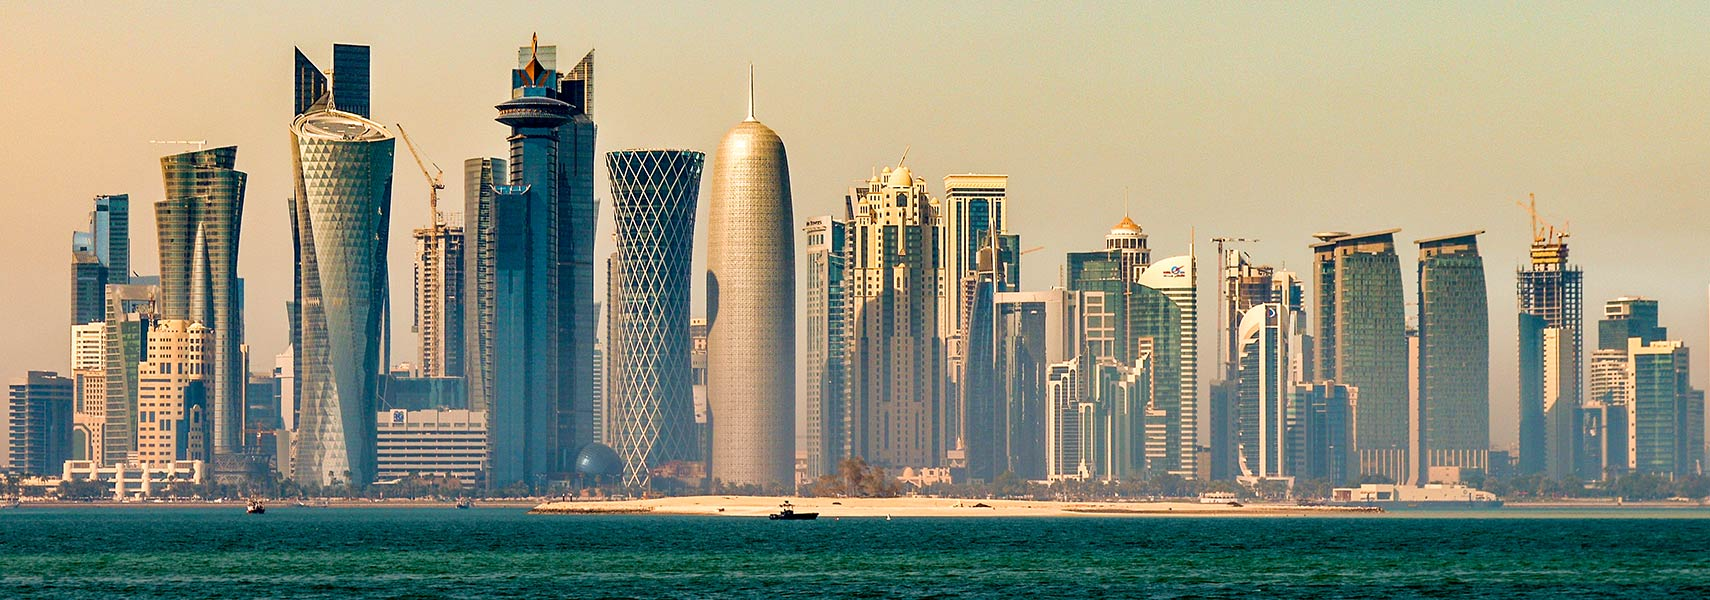 doha-skyline-in-the-morning.jpg